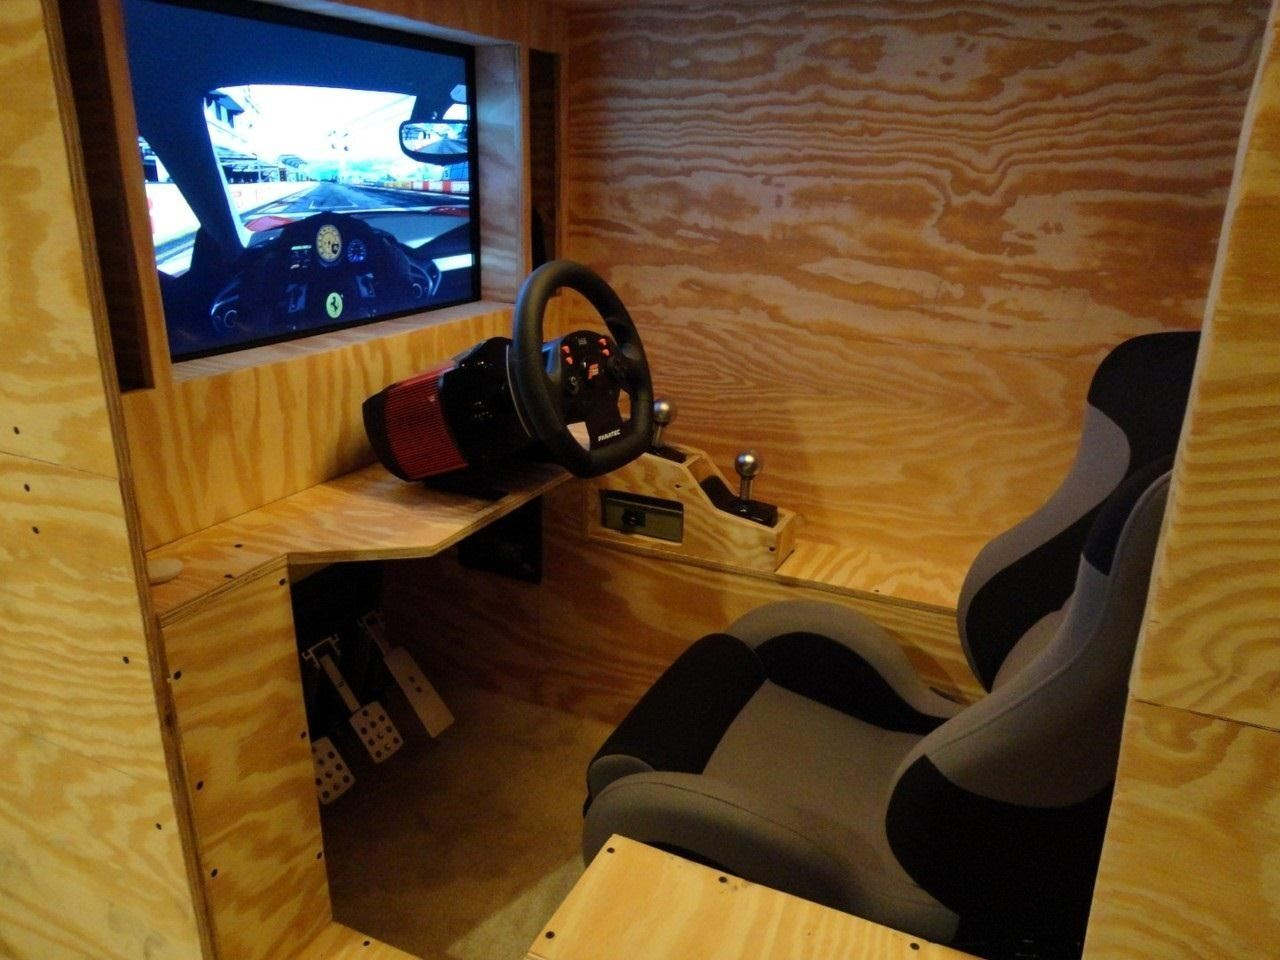 Satisfy Your Need for Speed with This DIY Arcade-Style Racing Cockpit